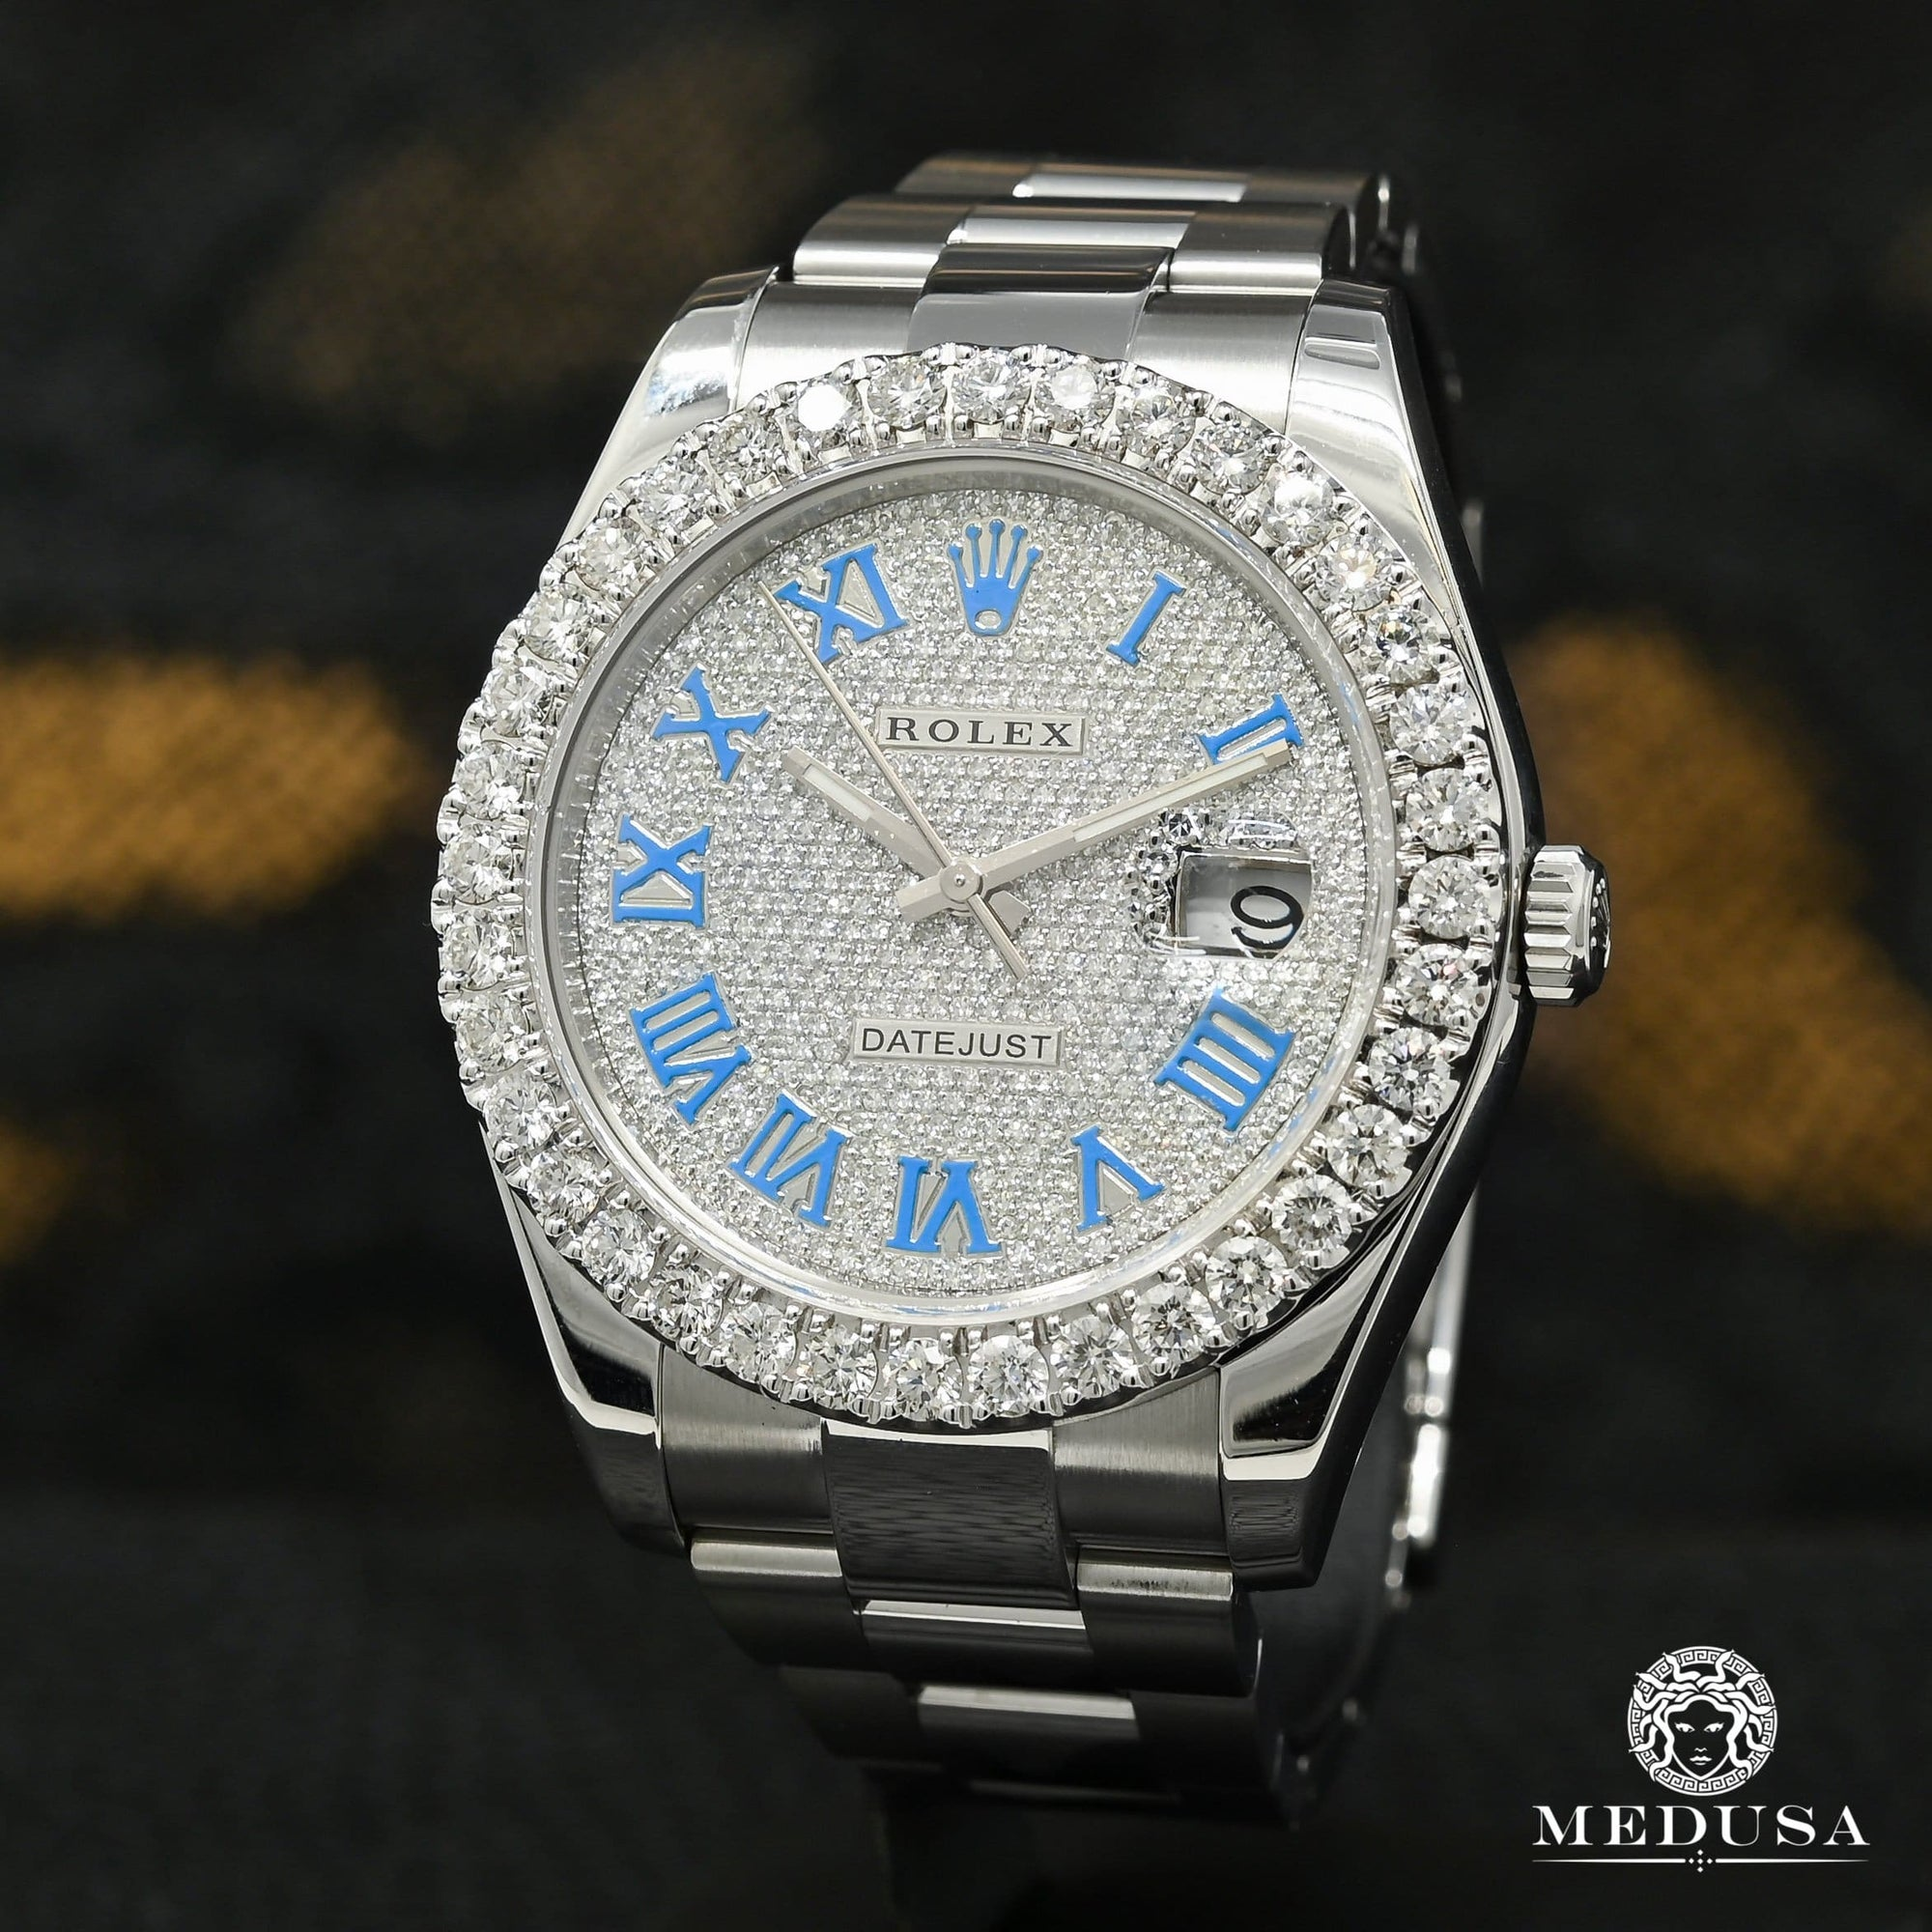 Rolex Datejust 41mm - Blue Romain Iced